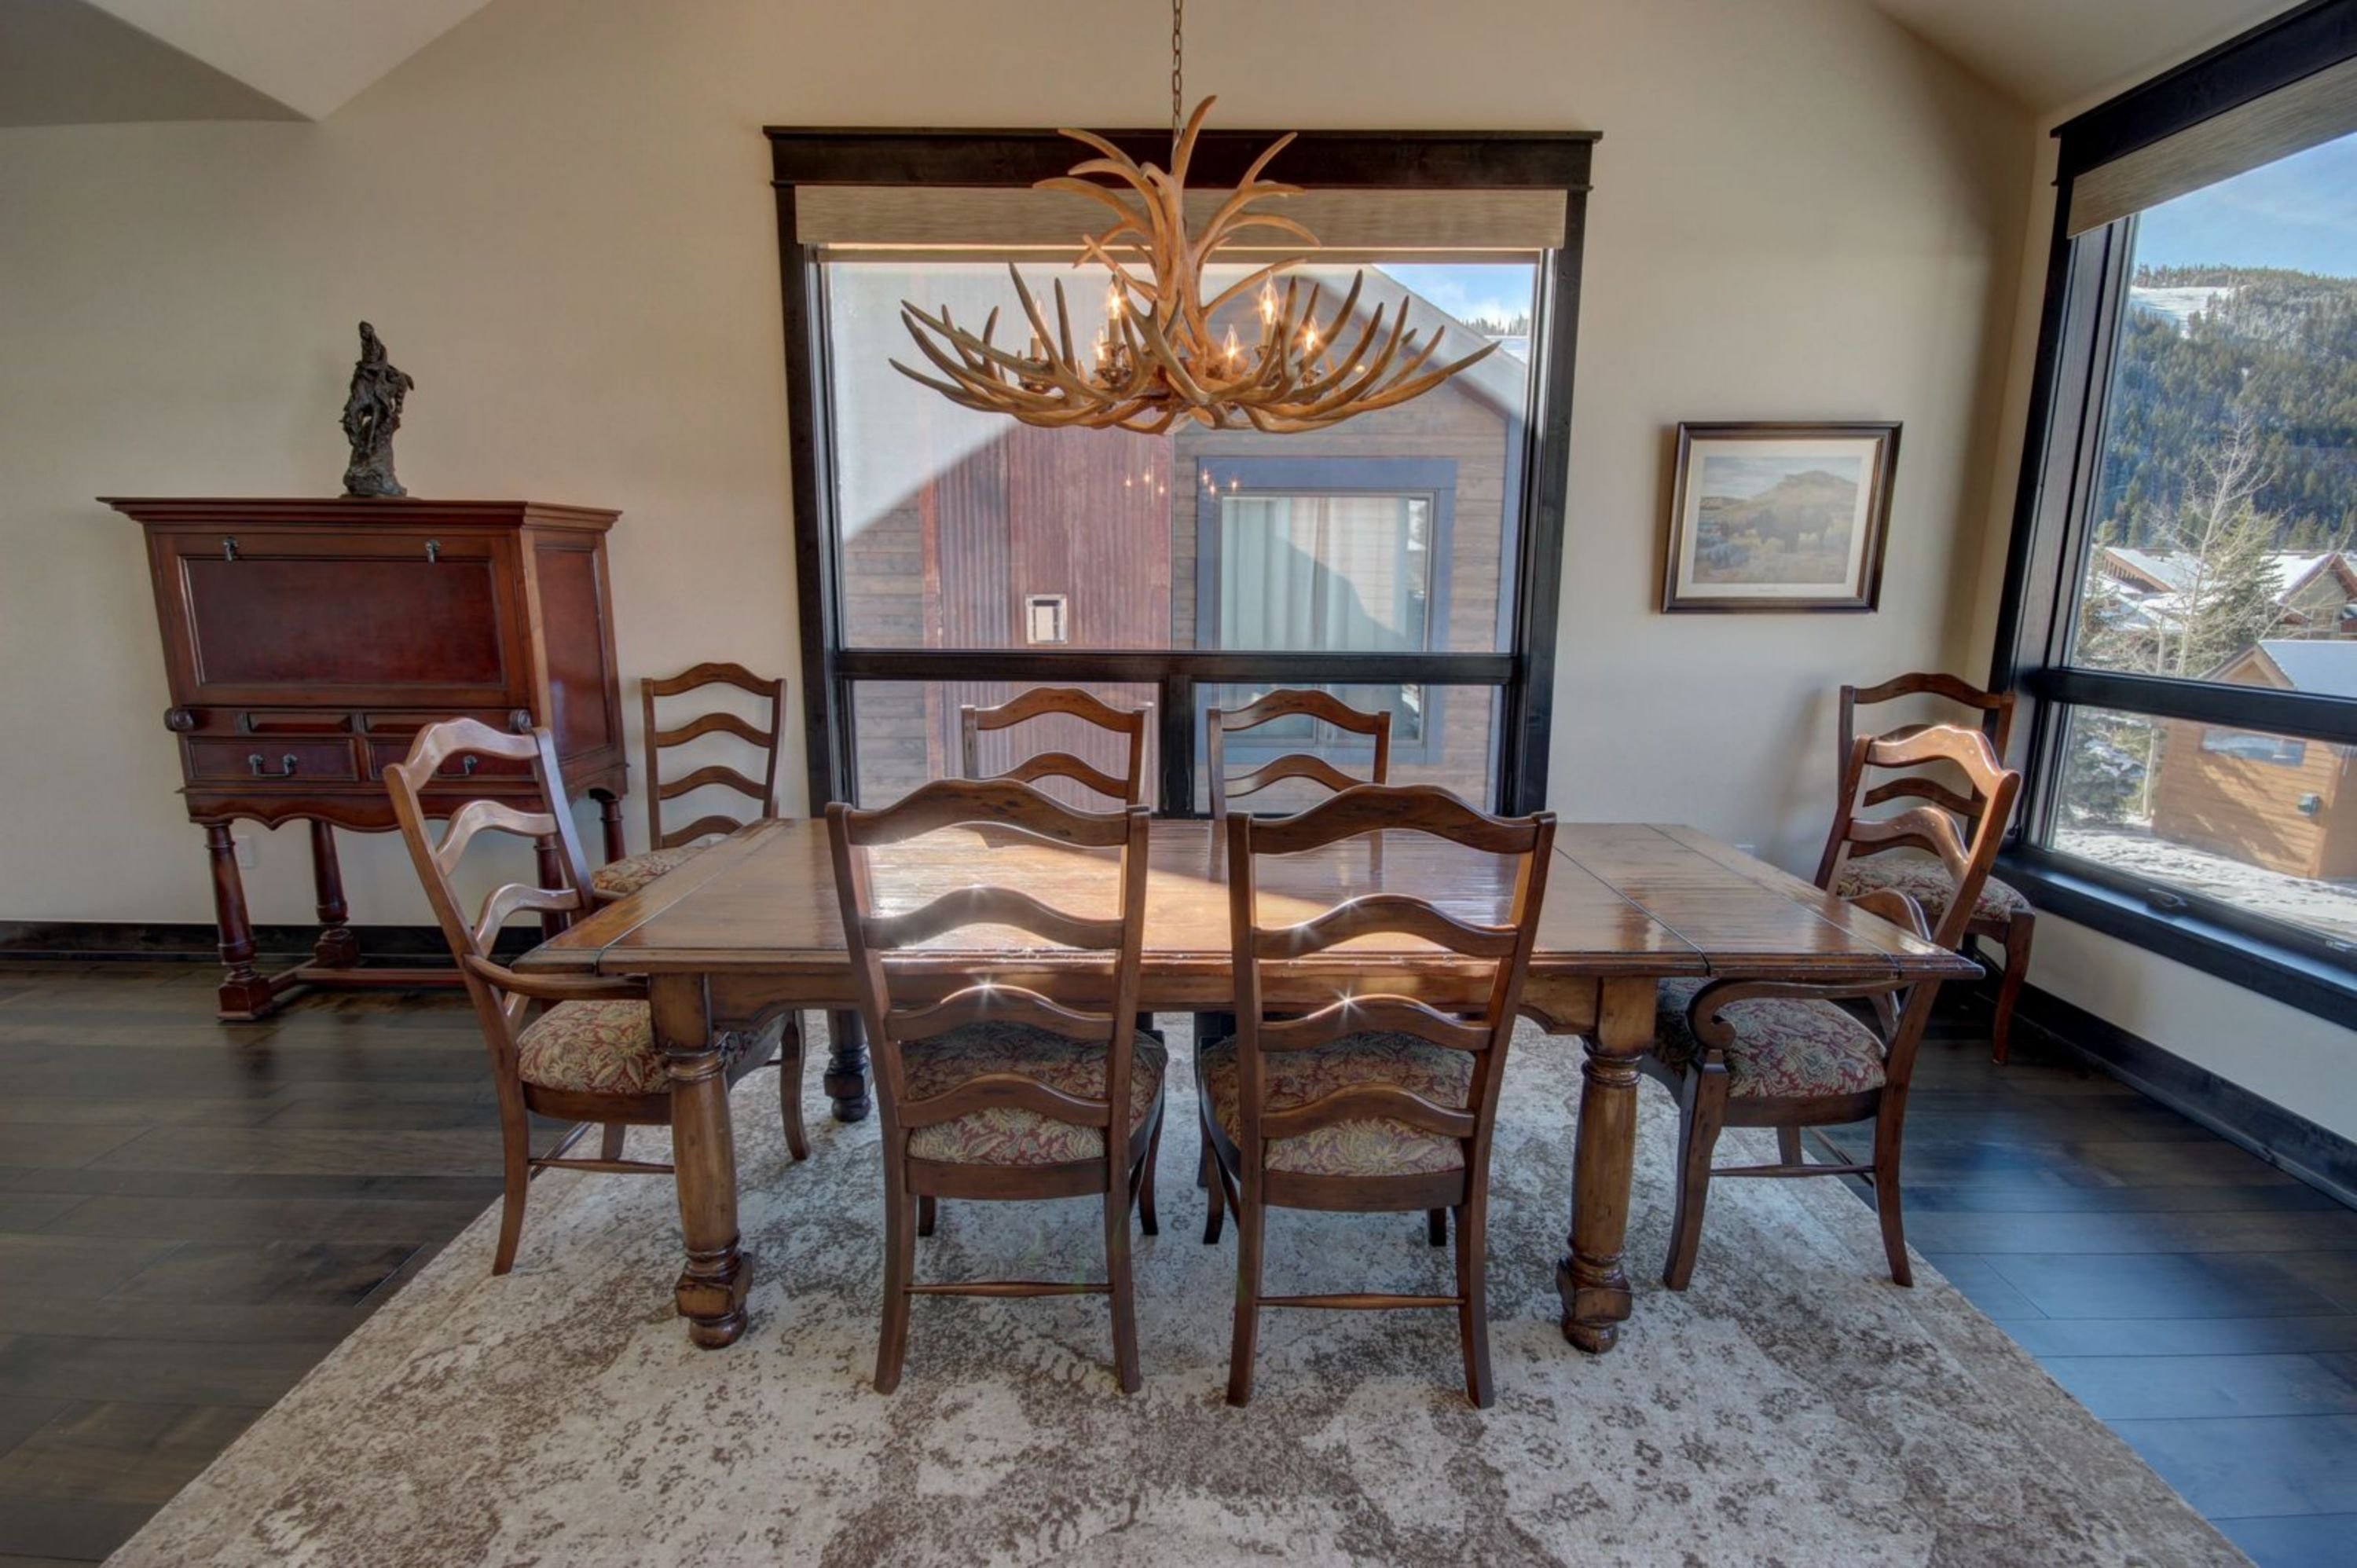 Dining room with beautiful wooden table